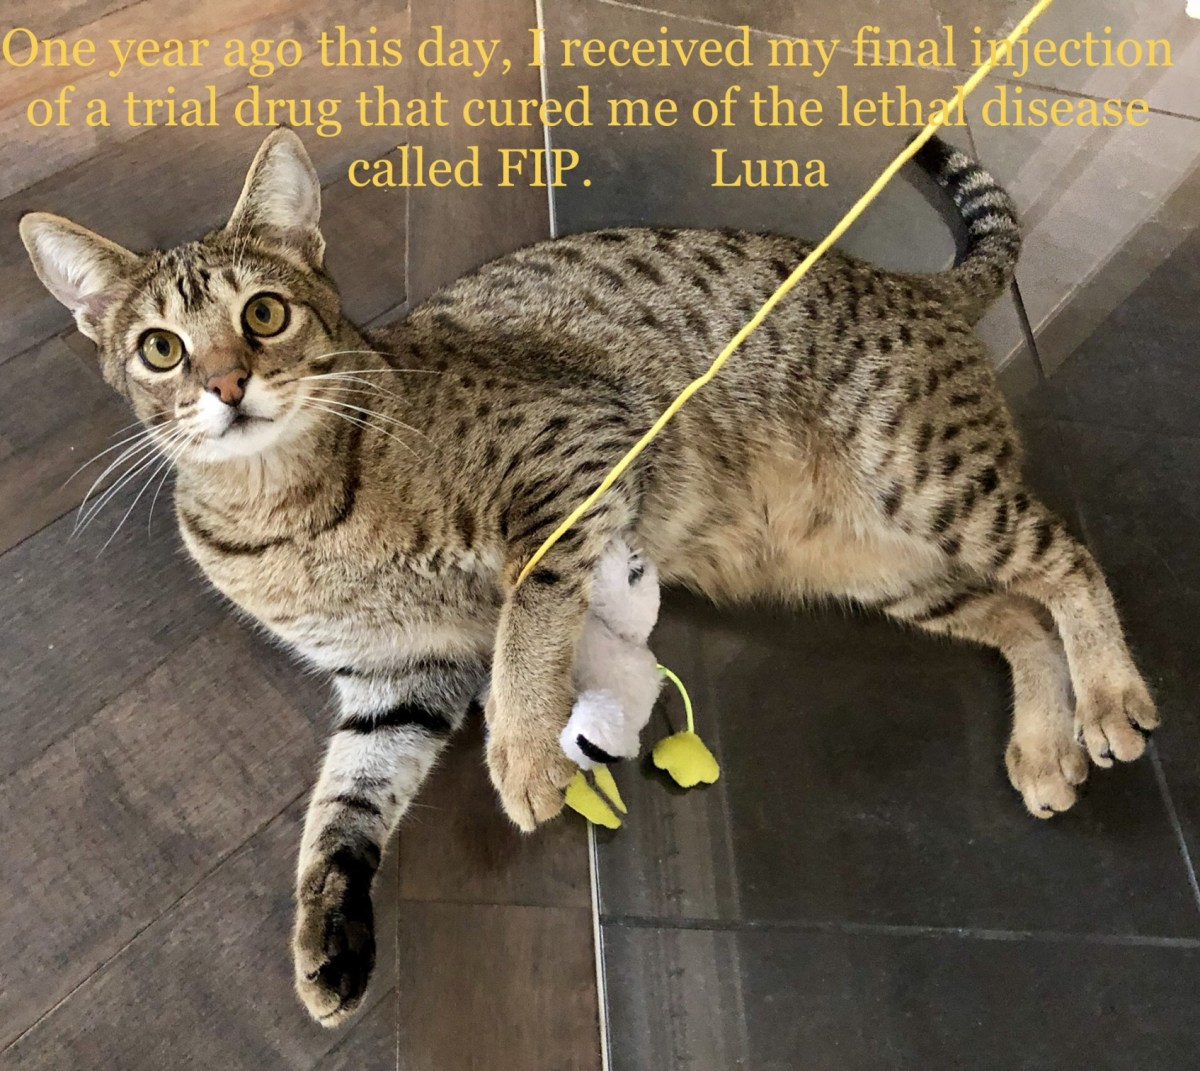 One year free of FIP.